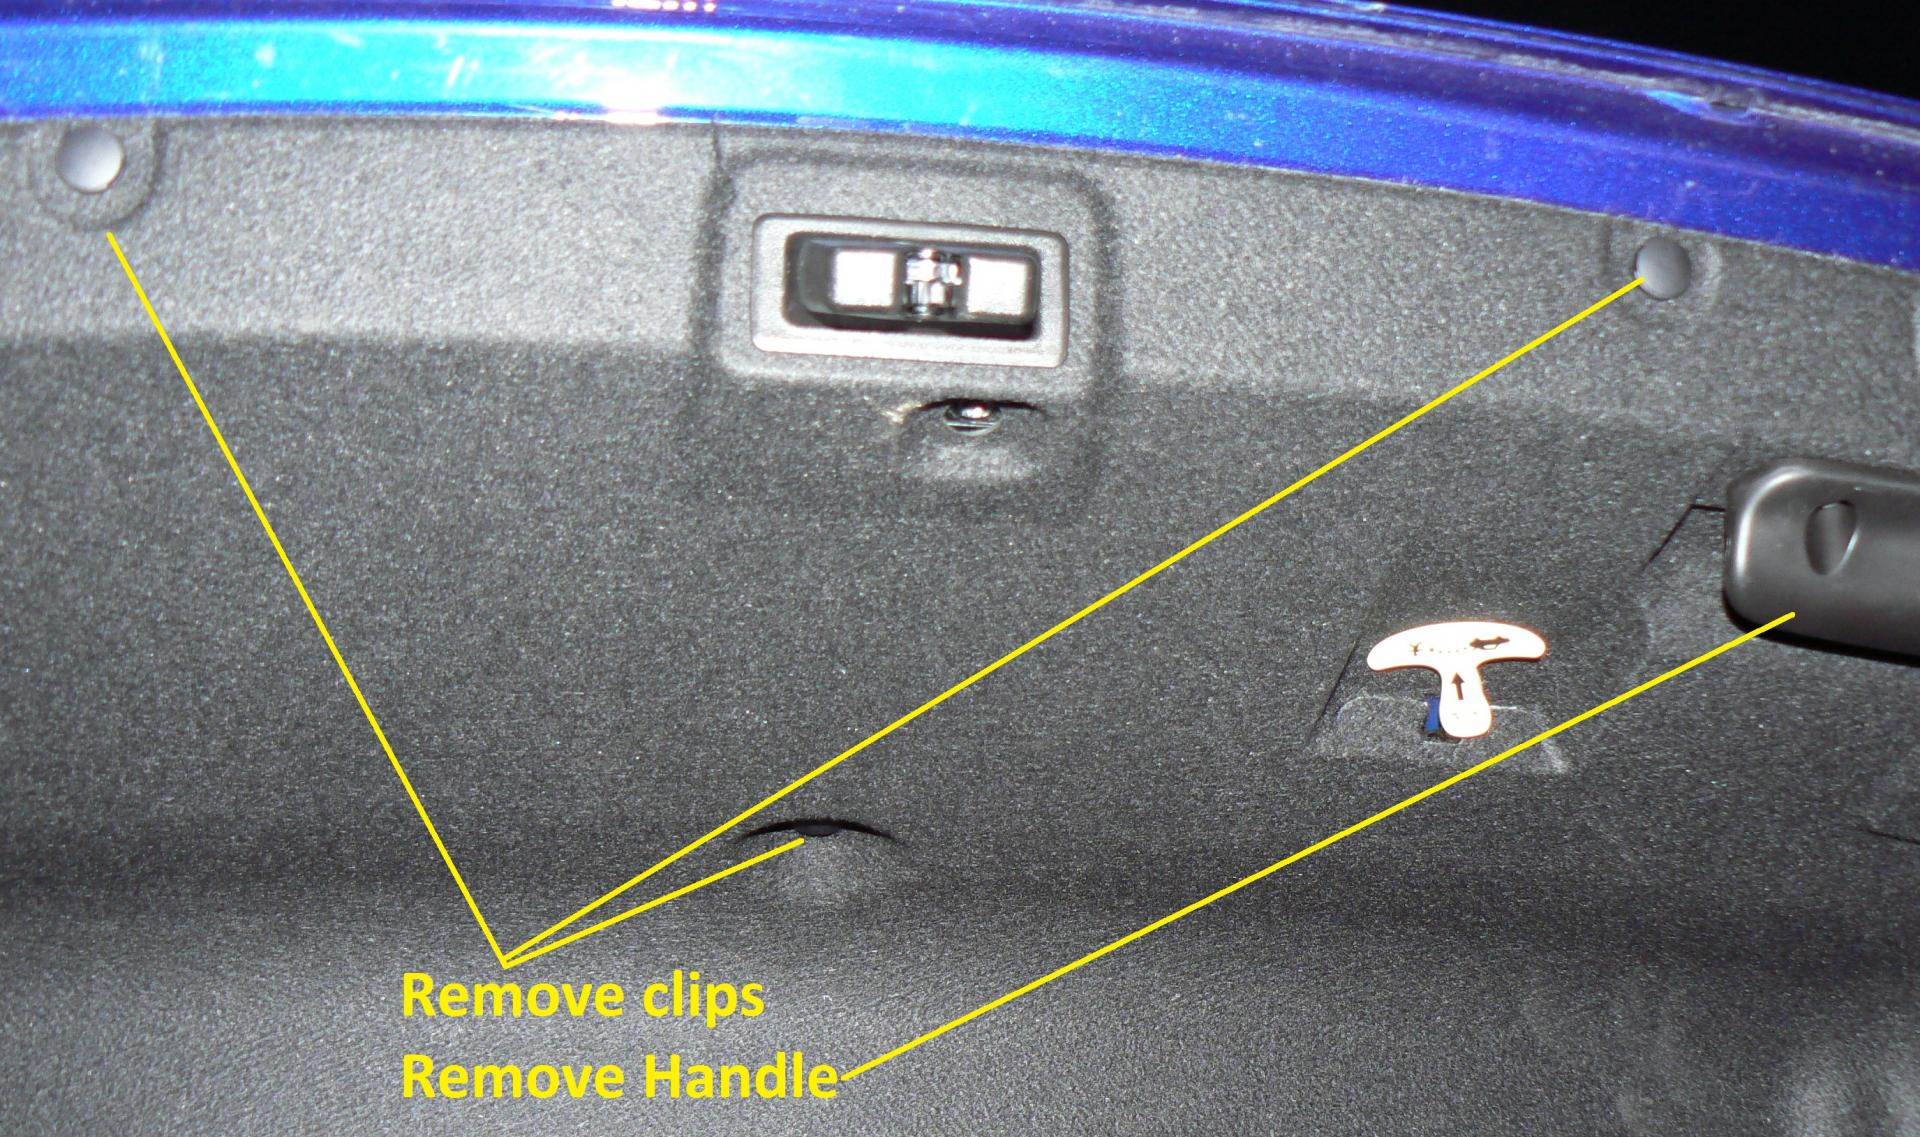 Chevy Cruze Wiring Harness Boot Library Grommet How To Install A Back Up Camera Cheaply Liner